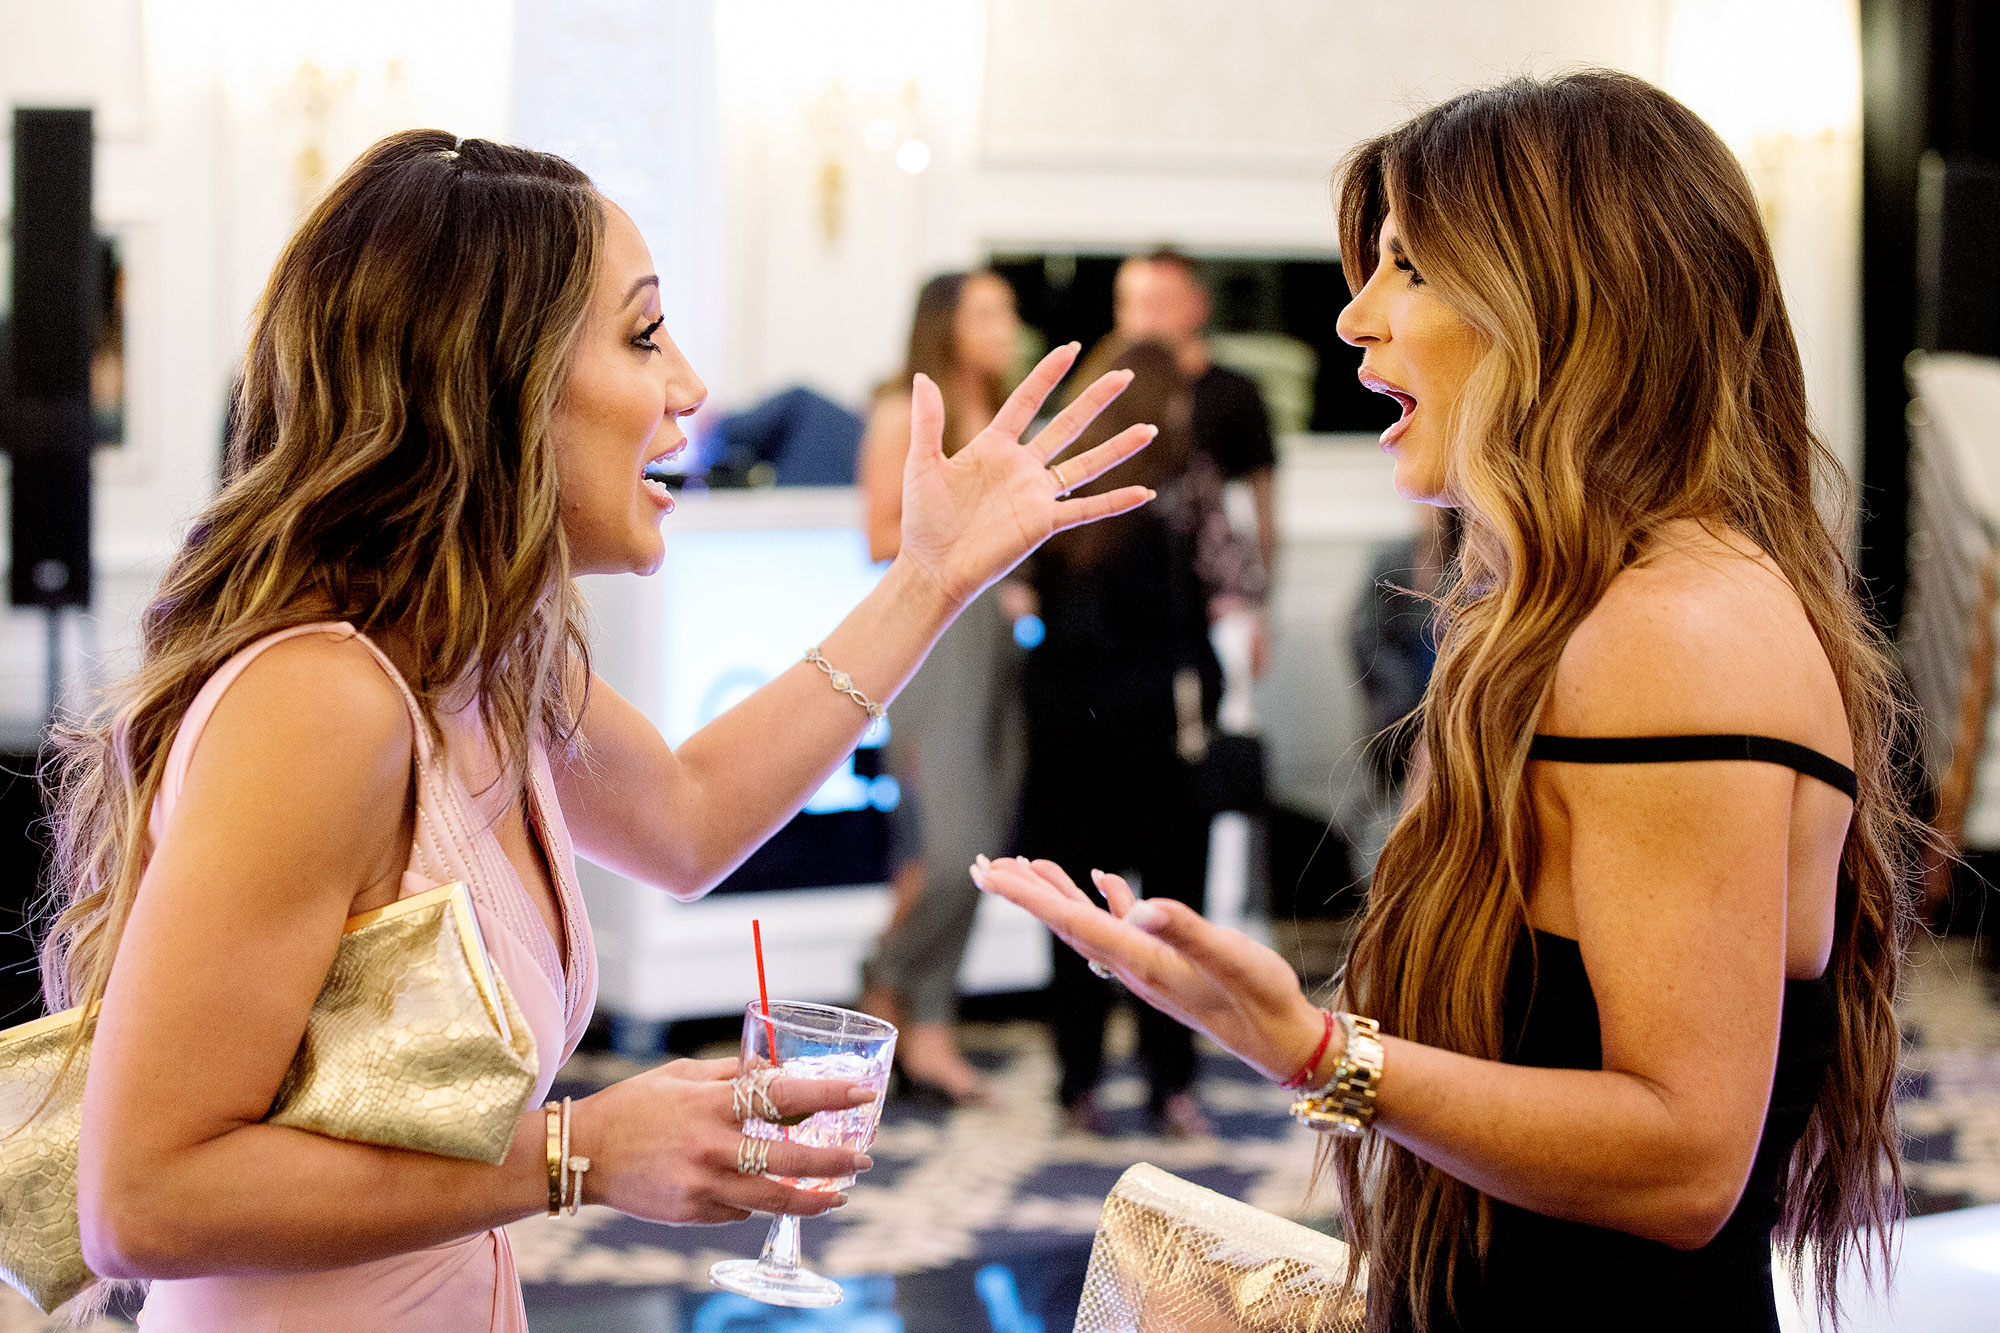 Melissa Gorga and Teresa Giudice on The Real Housewives of New Jersey Andy Cohen Reveals the Real Housewives of New Jersey Season 10 Delivered'